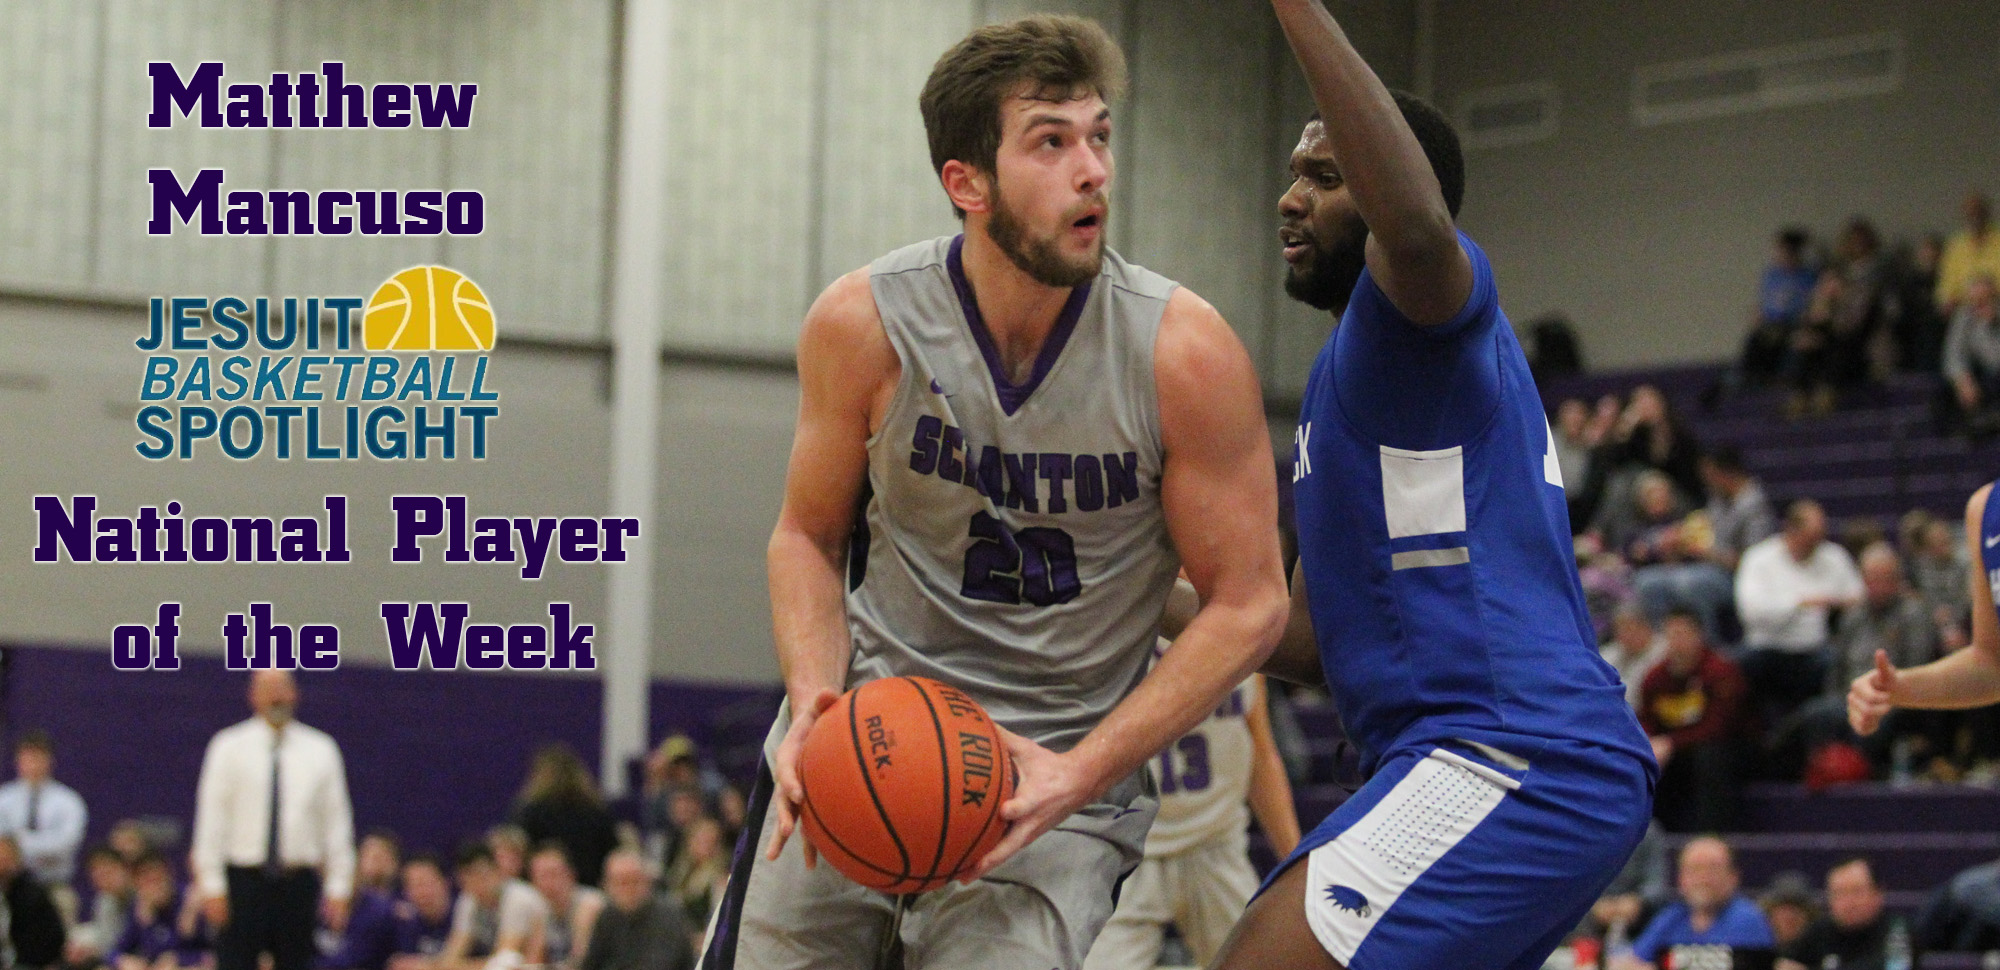 Junior forward Matthew Mancuso has been named the National Jesuit Player of the Week.